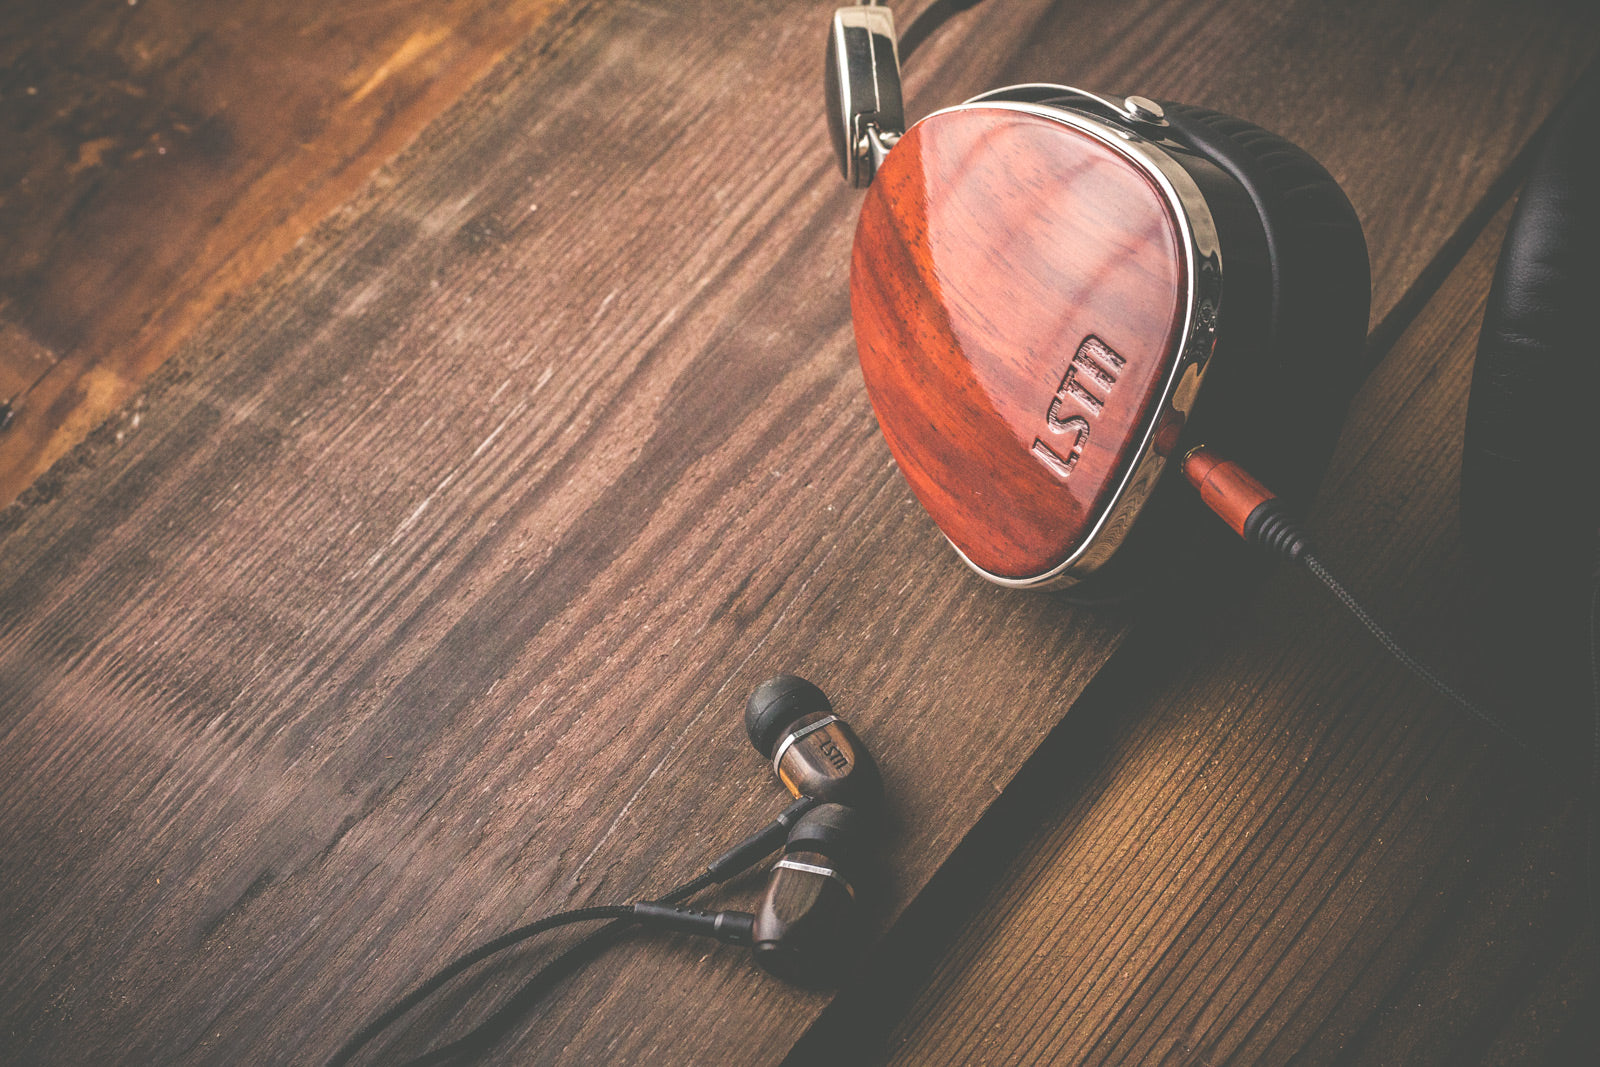 lstn sound wood earbuds and headphones for corporate gifts and holiday gifts